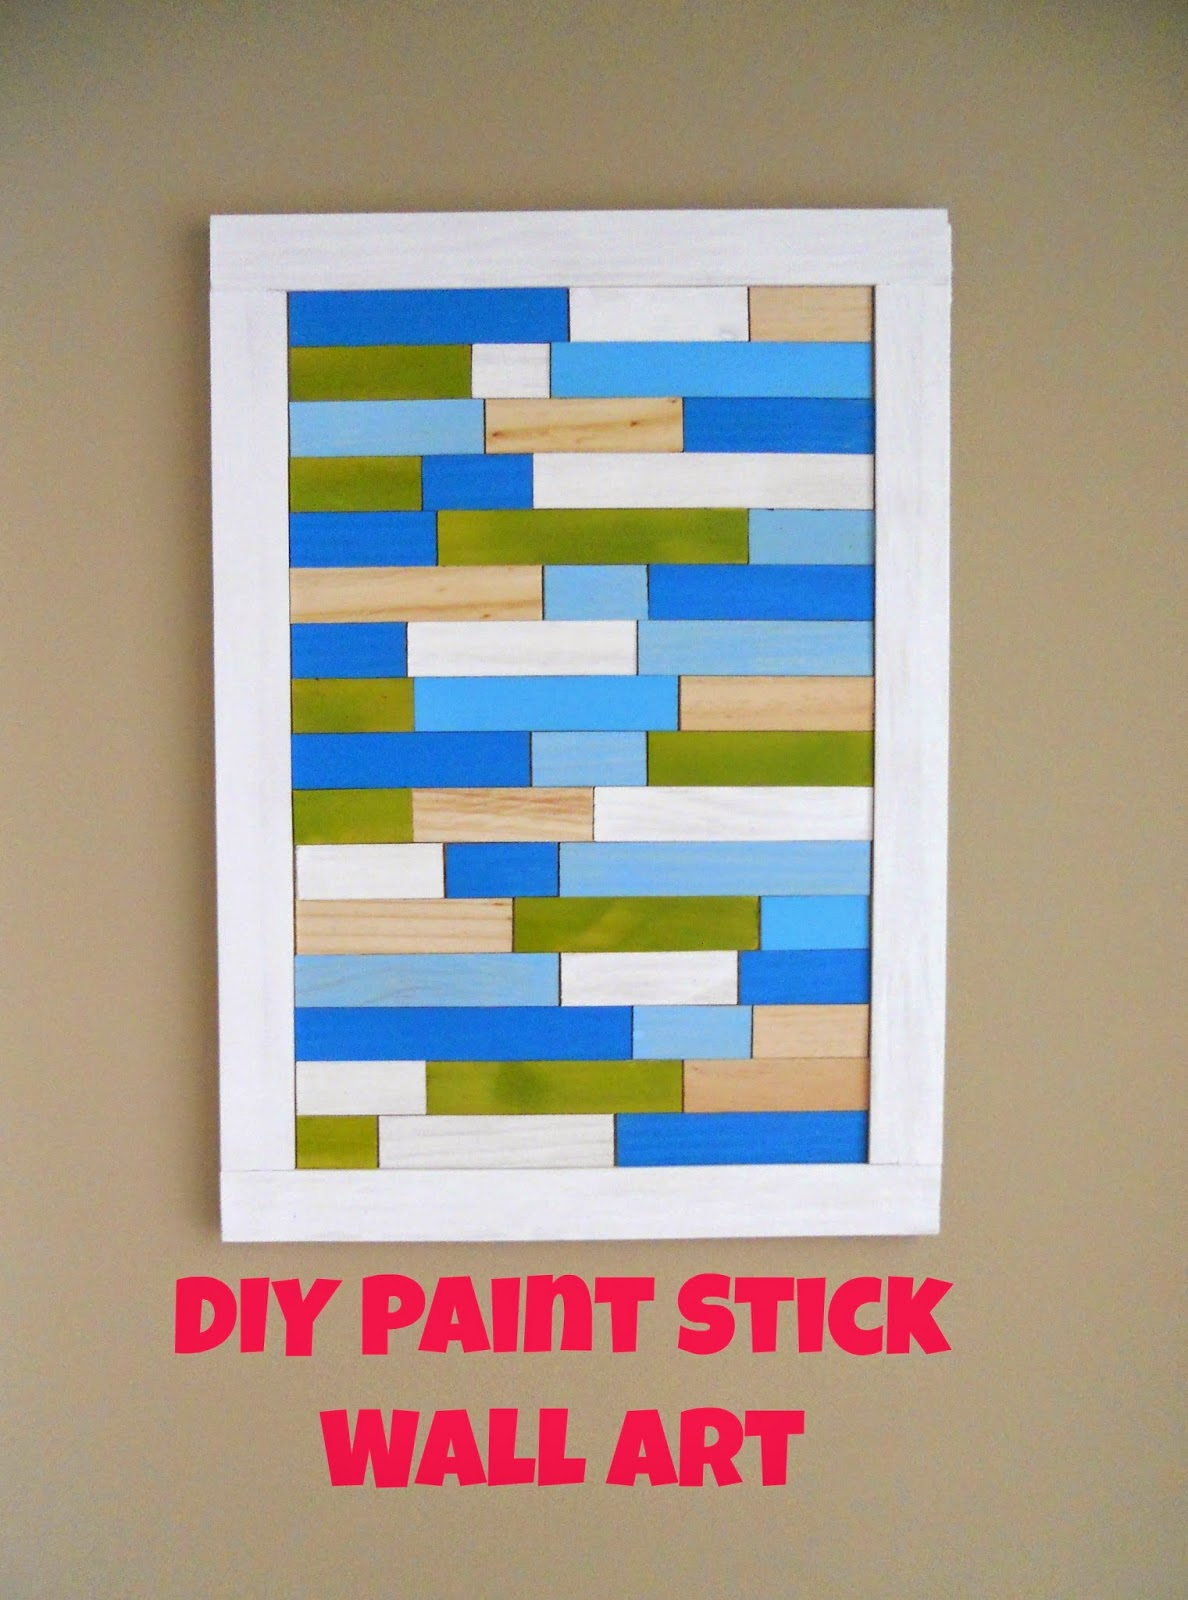 http://decoratingcents.blogspot.com/2014/04/diy-paint-stick-wall-art.html